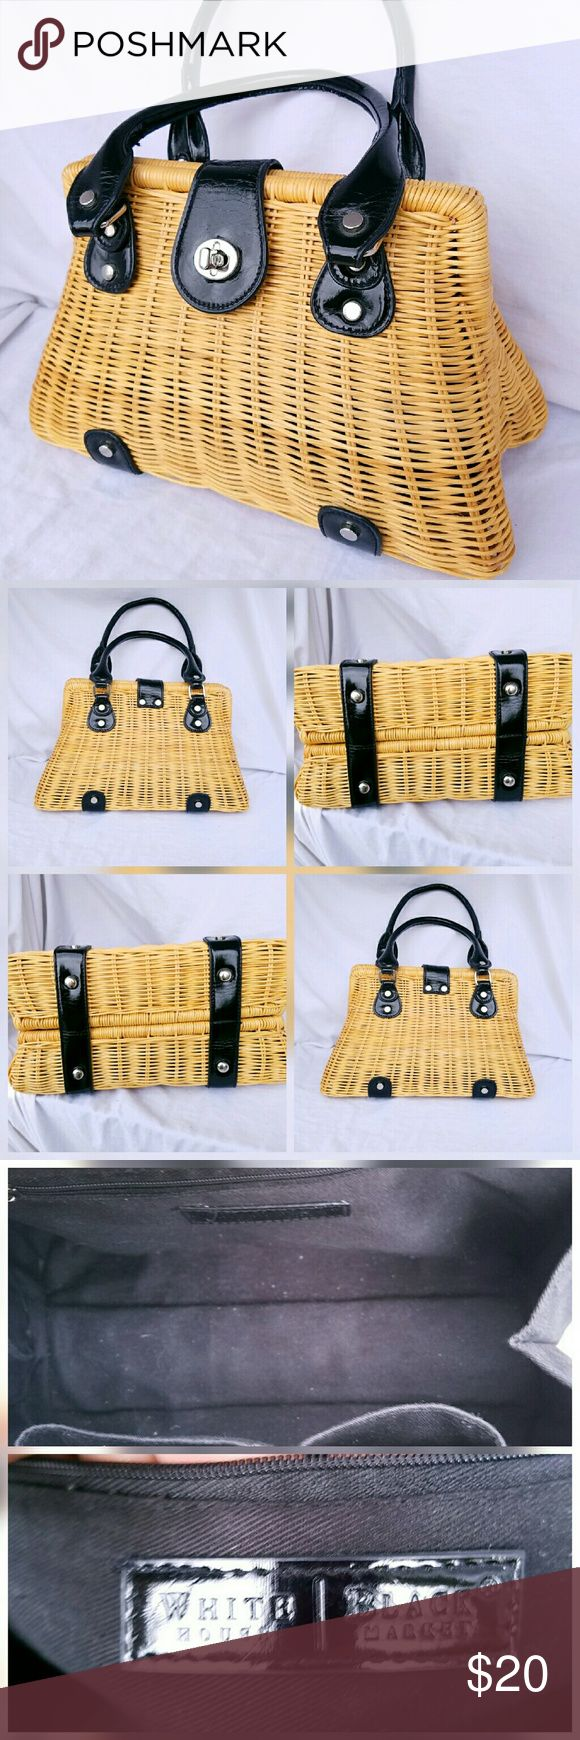 """WHBM Wicker Satchel - White House Black Market - Wicker Satchel with black faux leather trim - Interior features 2 slip pockets and a zipper pocket - Perfect Gift for that basket lover in your life  Measures approximately 11"""" W x 8"""" H x 4"""" D with 5"""" Strap drop. White House Black Market Bags Satchels"""